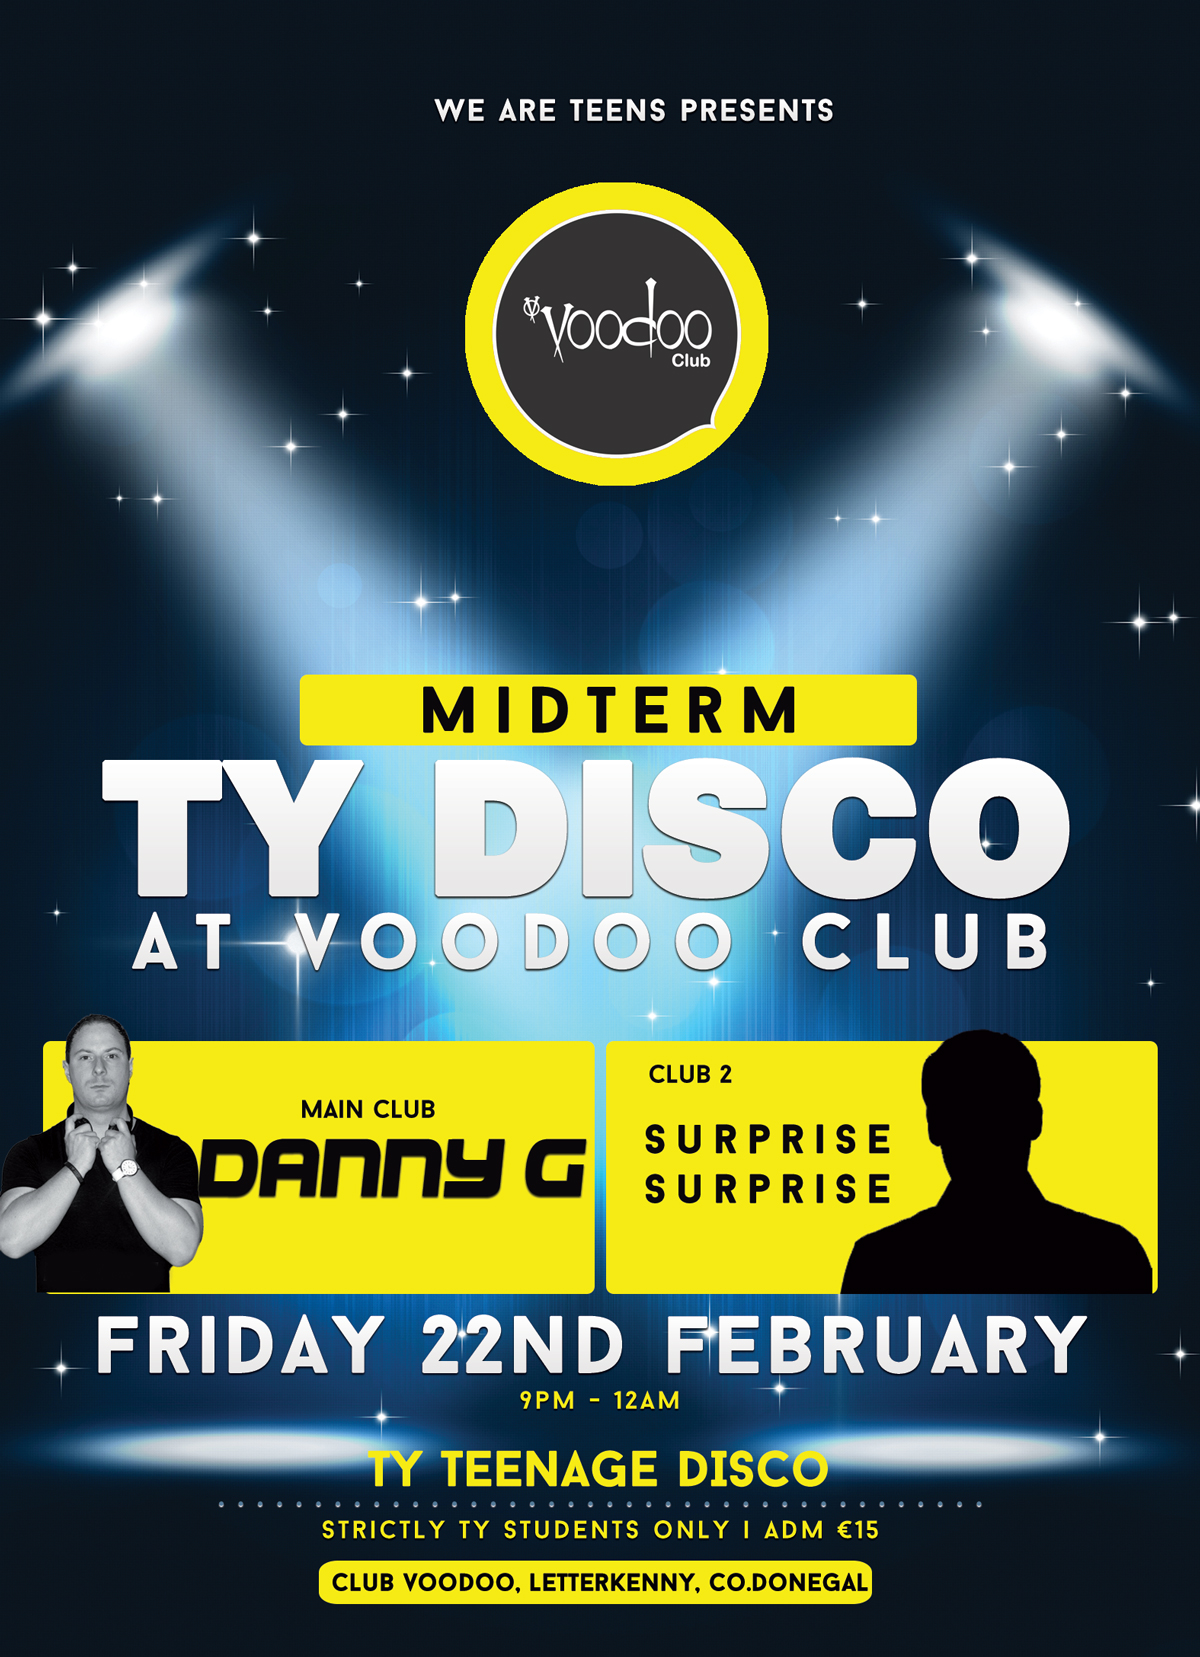 voodoo-we-are-teens---ty-disco-danny-g-fri-feb-22-2019.jpg